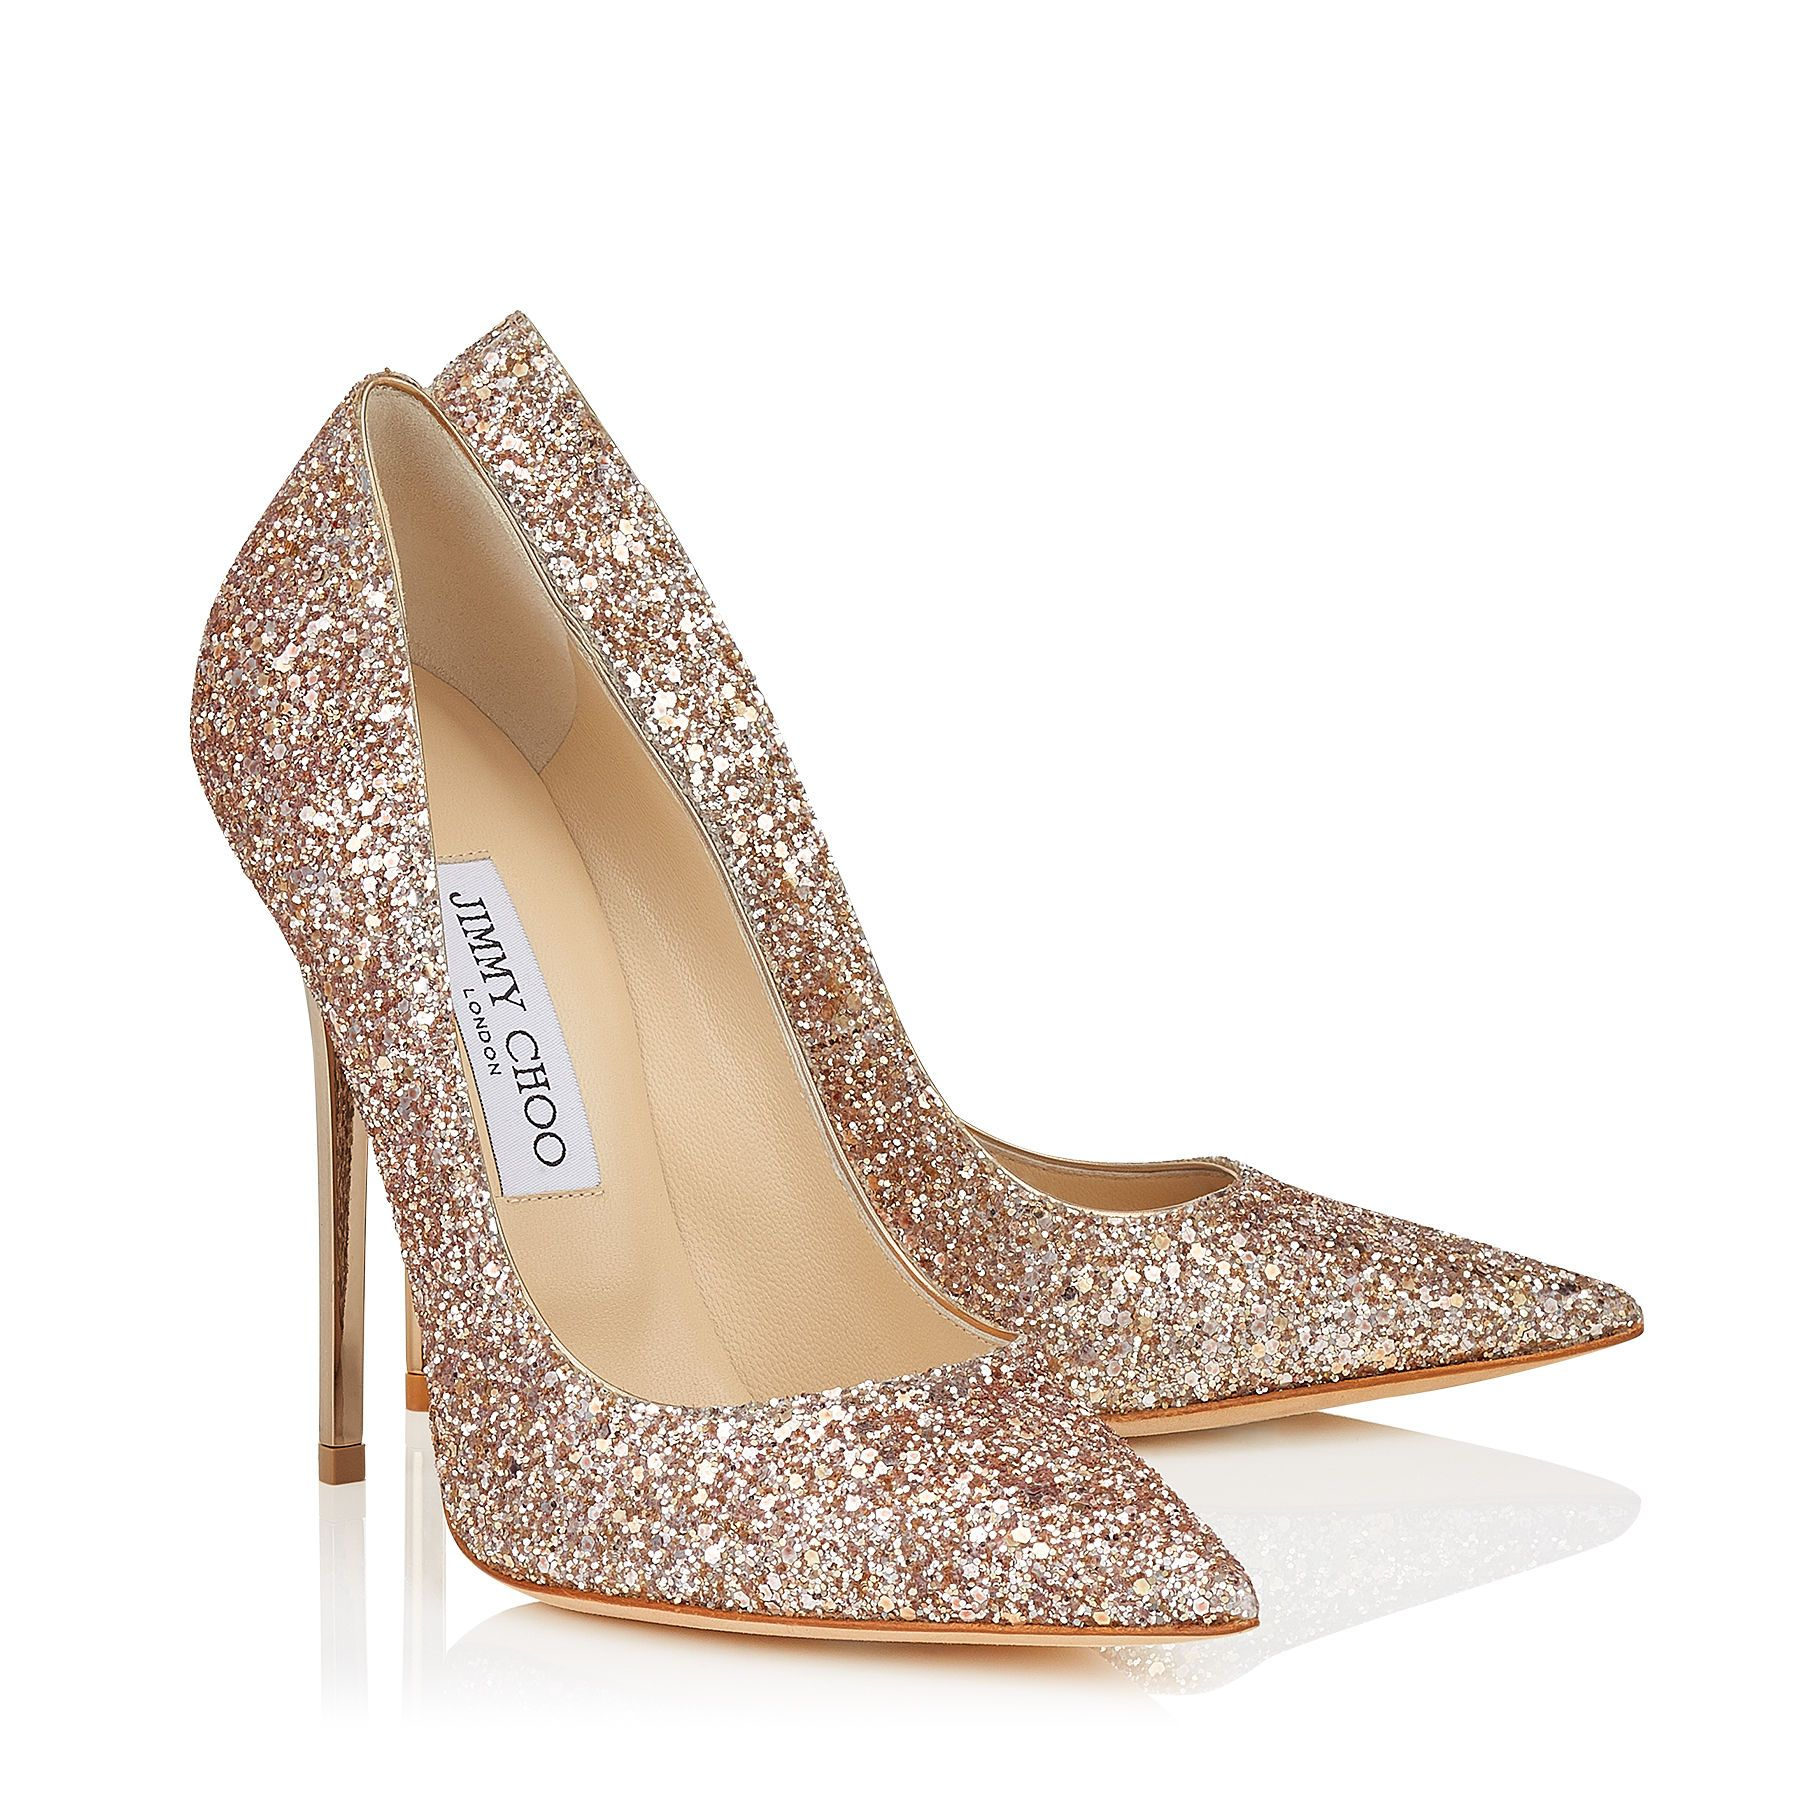 cd3e64ce64d285 Jimmy Choo nude shadow course, glitter ANOUK pumps | ShoeLaLa in ...